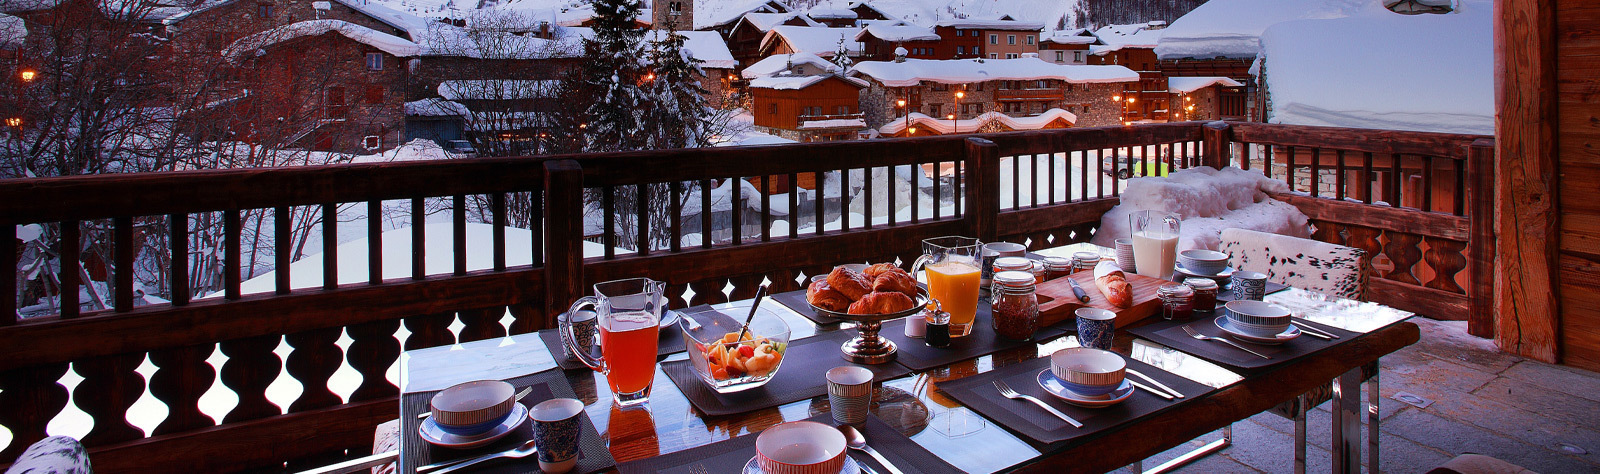 San Cassiano accommodations